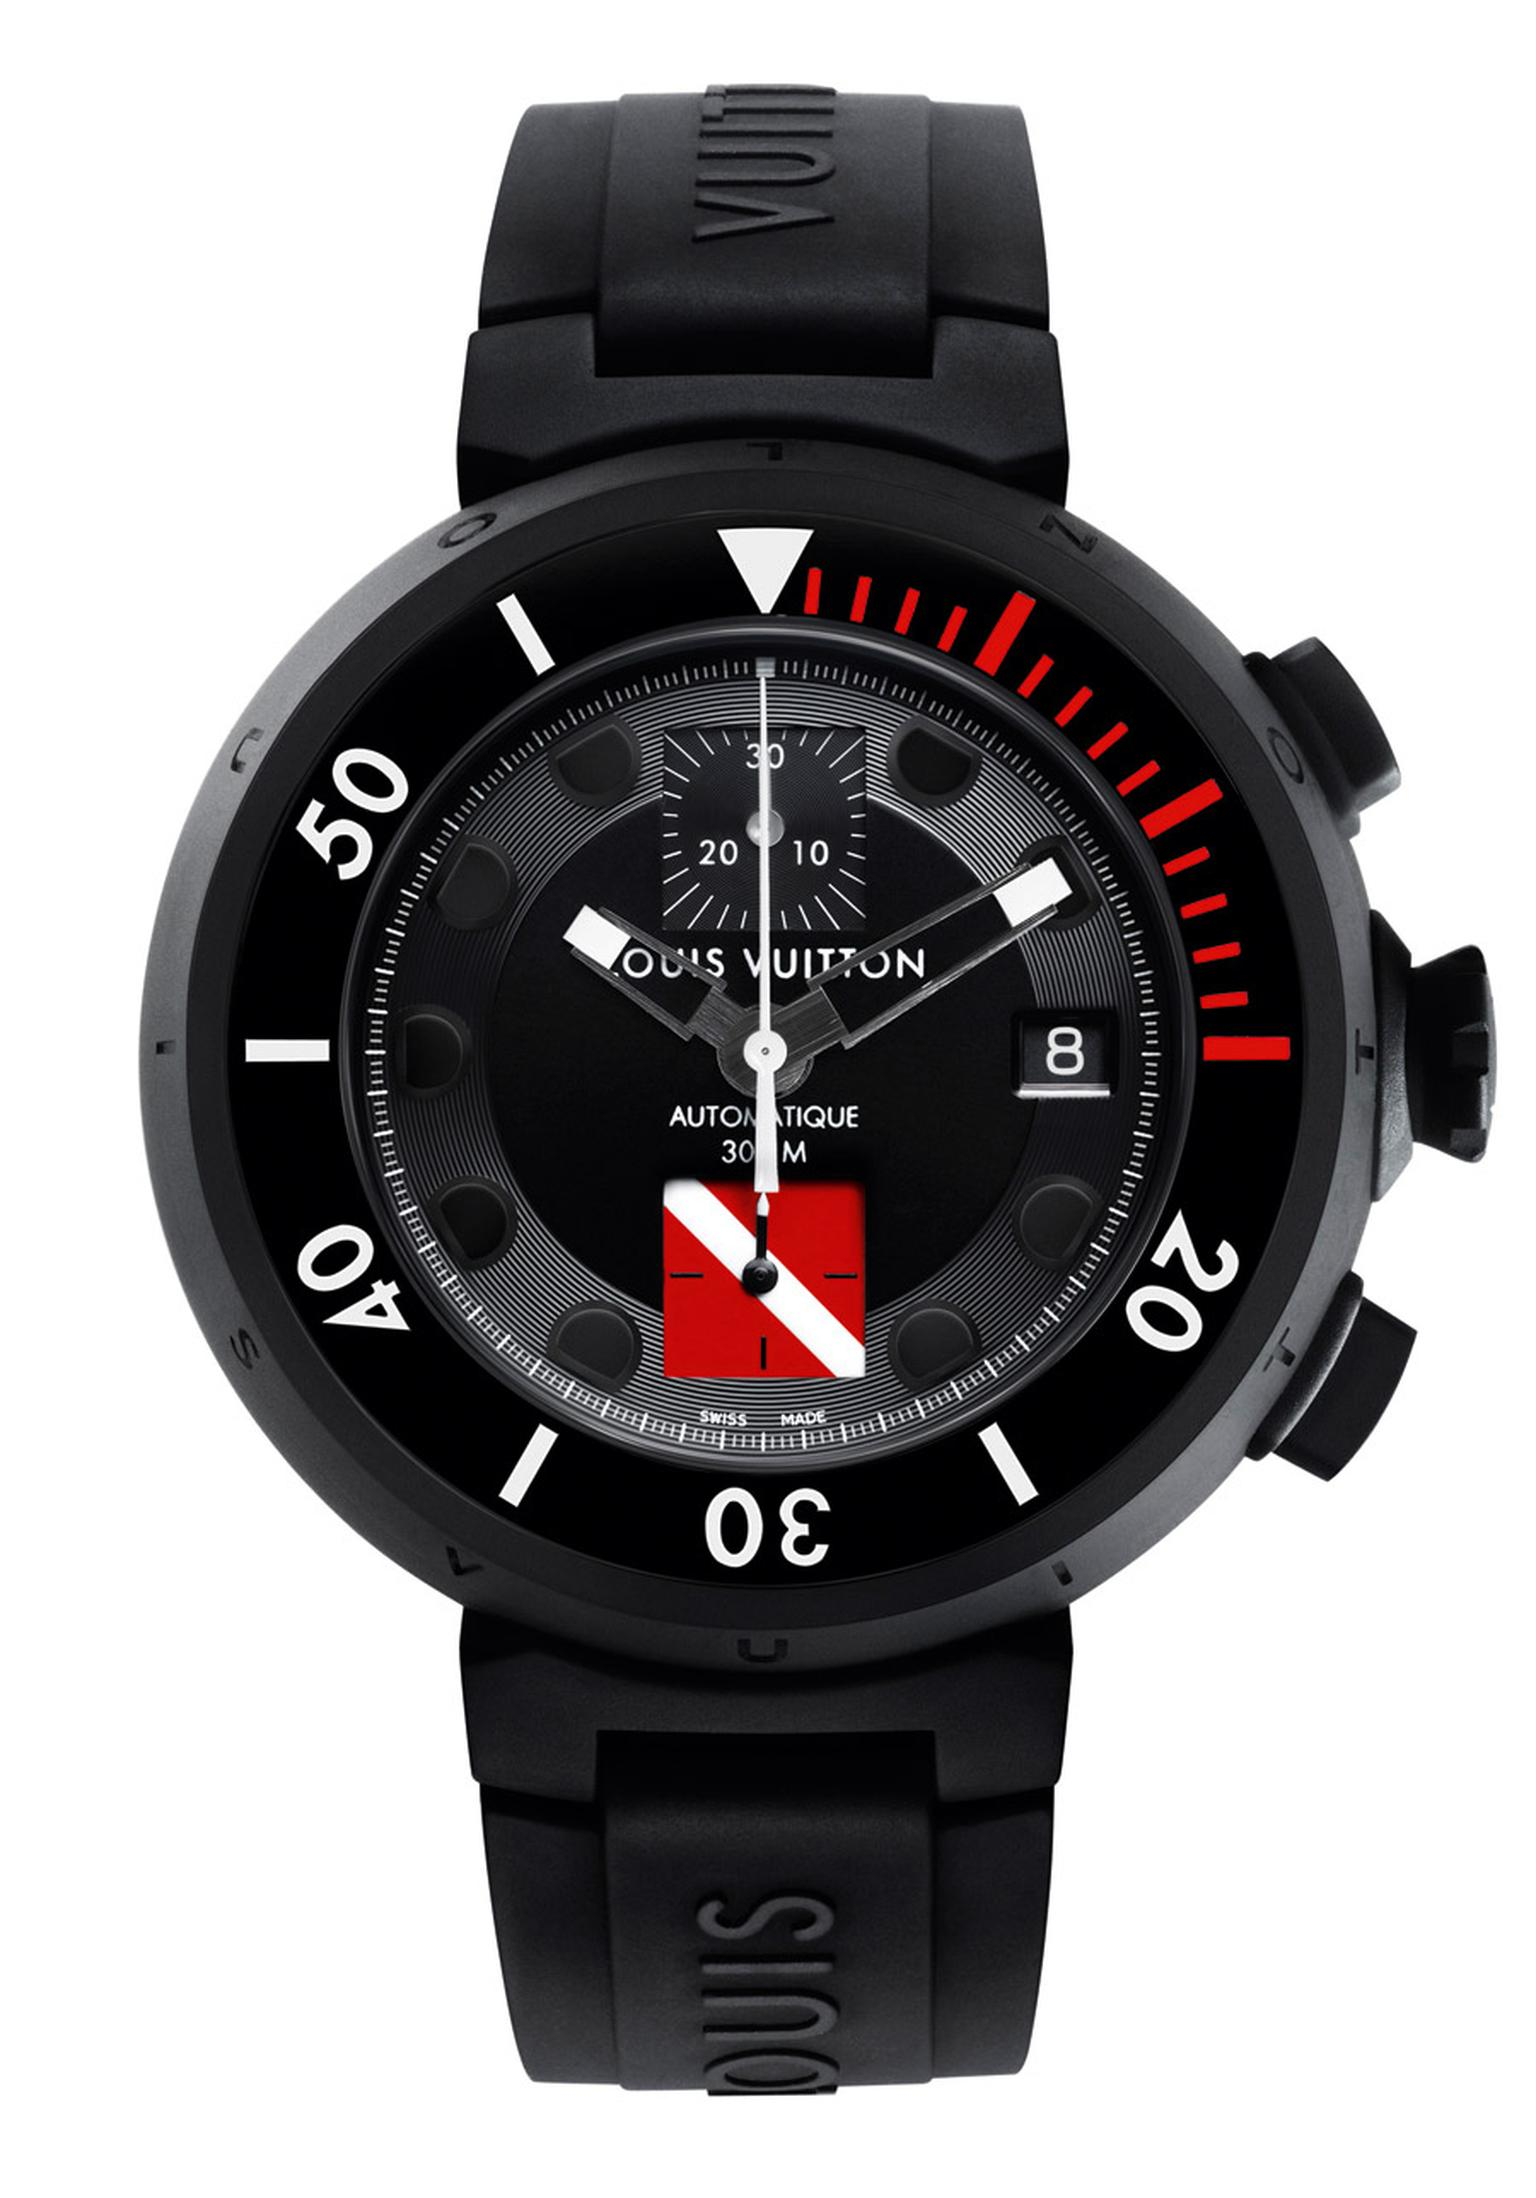 Louis-Vuitton-DIVING-CHRONO.jpg